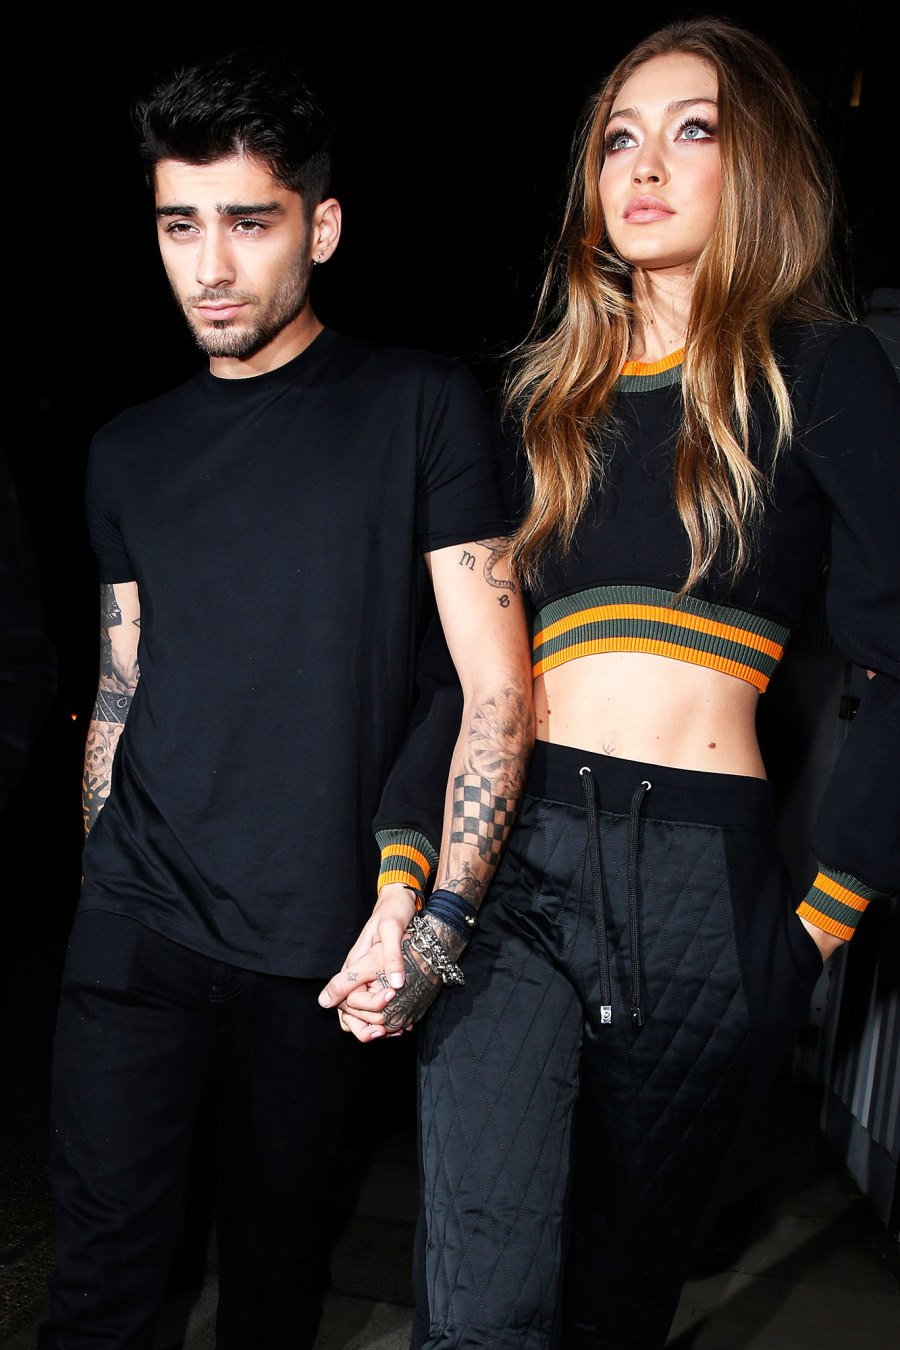 Revisit Zayn Malik and Gigi Hadid's Sweetest Quotes About Their Relationship